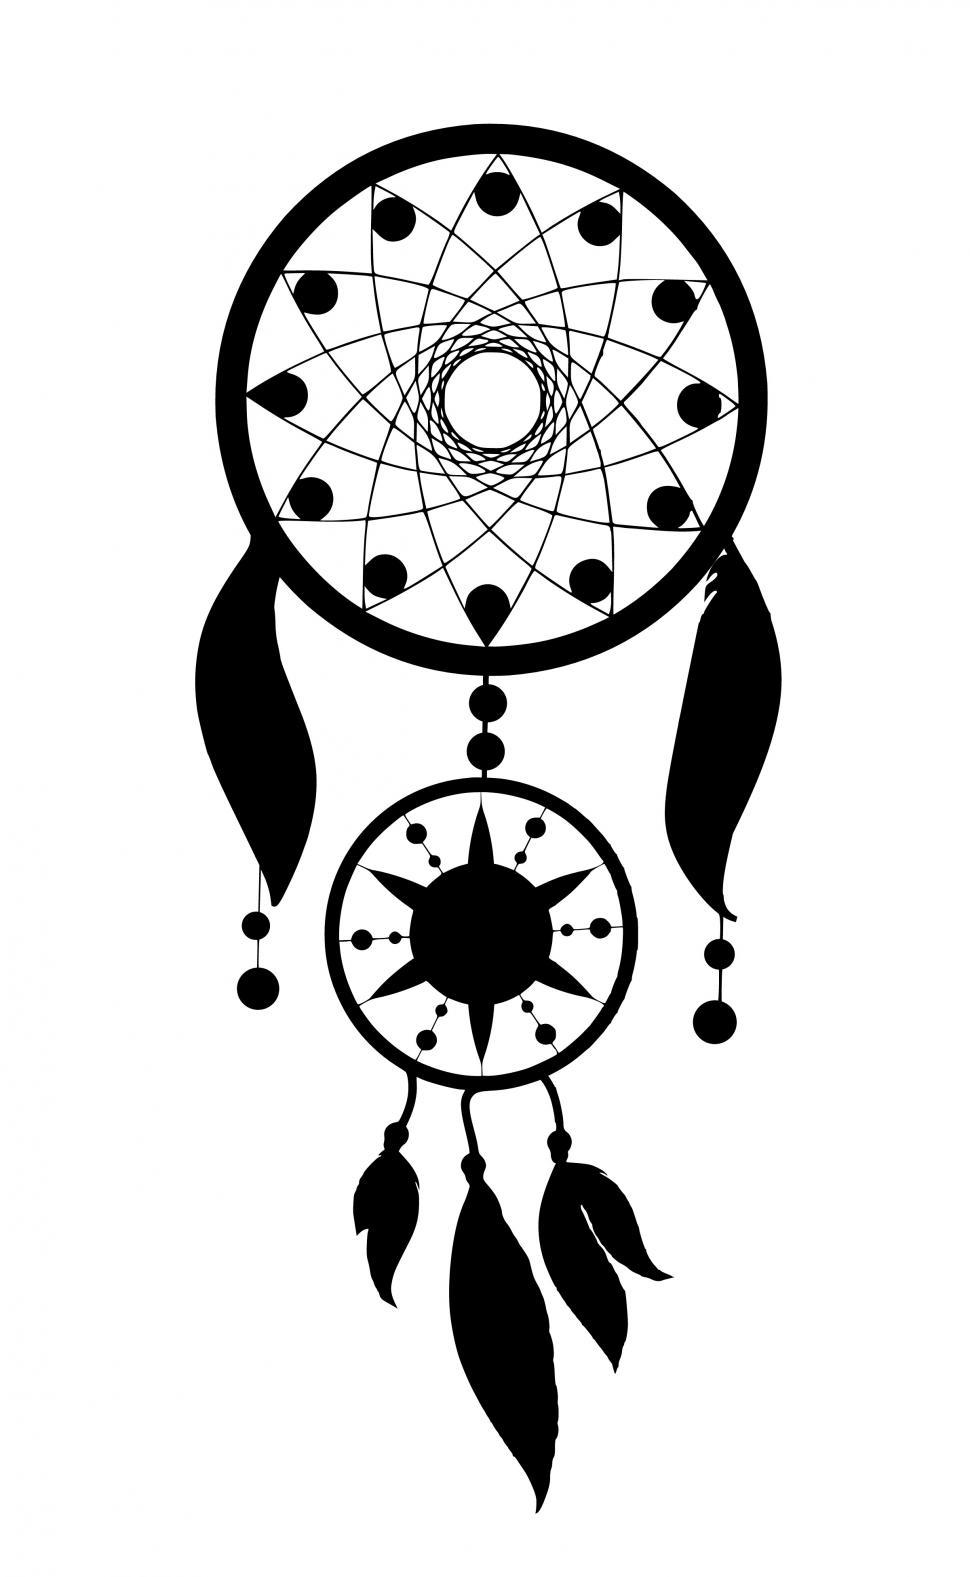 Download Free Stock Photo of dream catcher Silhouette